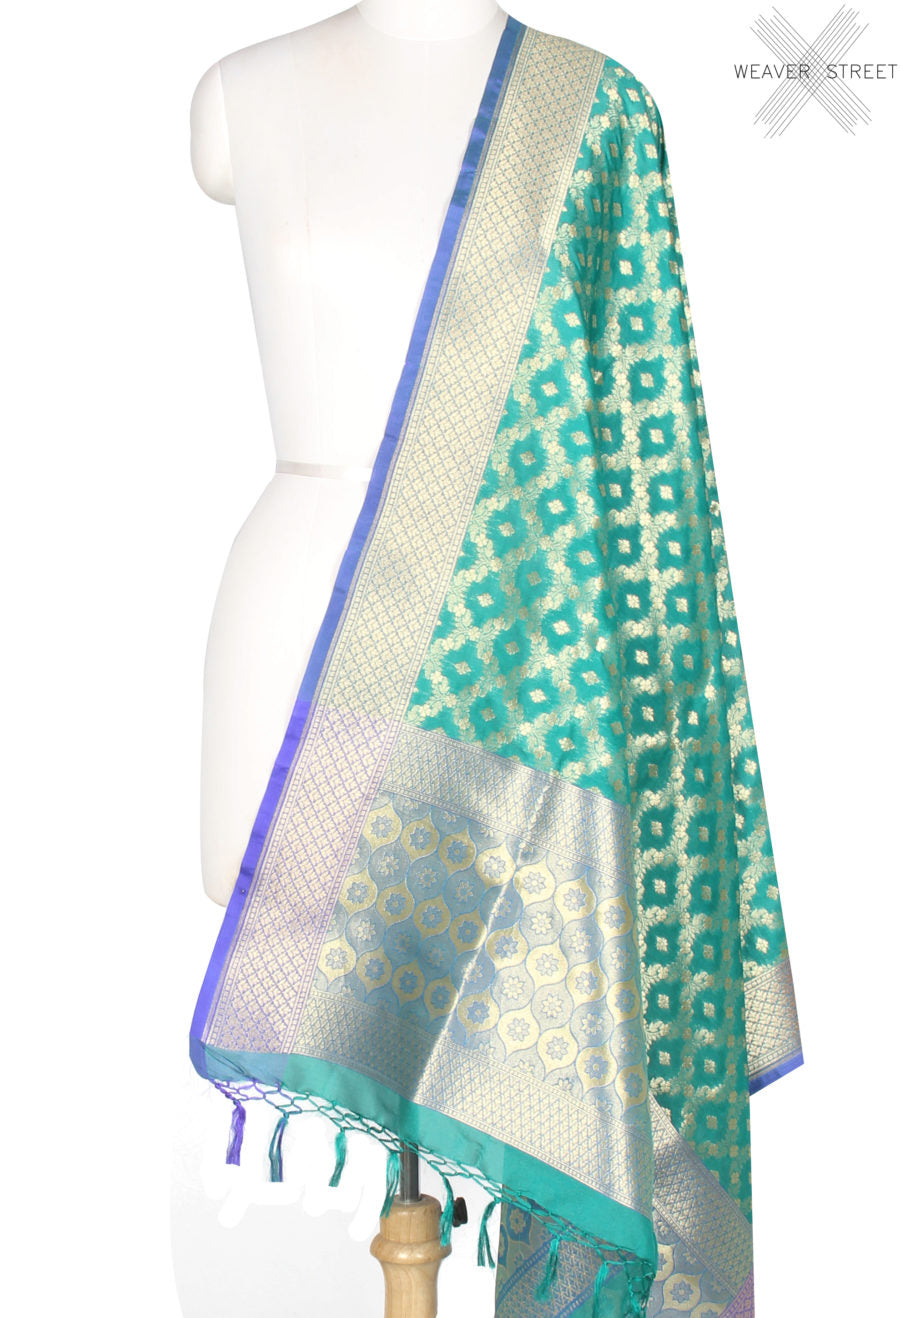 Green Banarasi Dupatta with flower and leaf jaal (1) Main